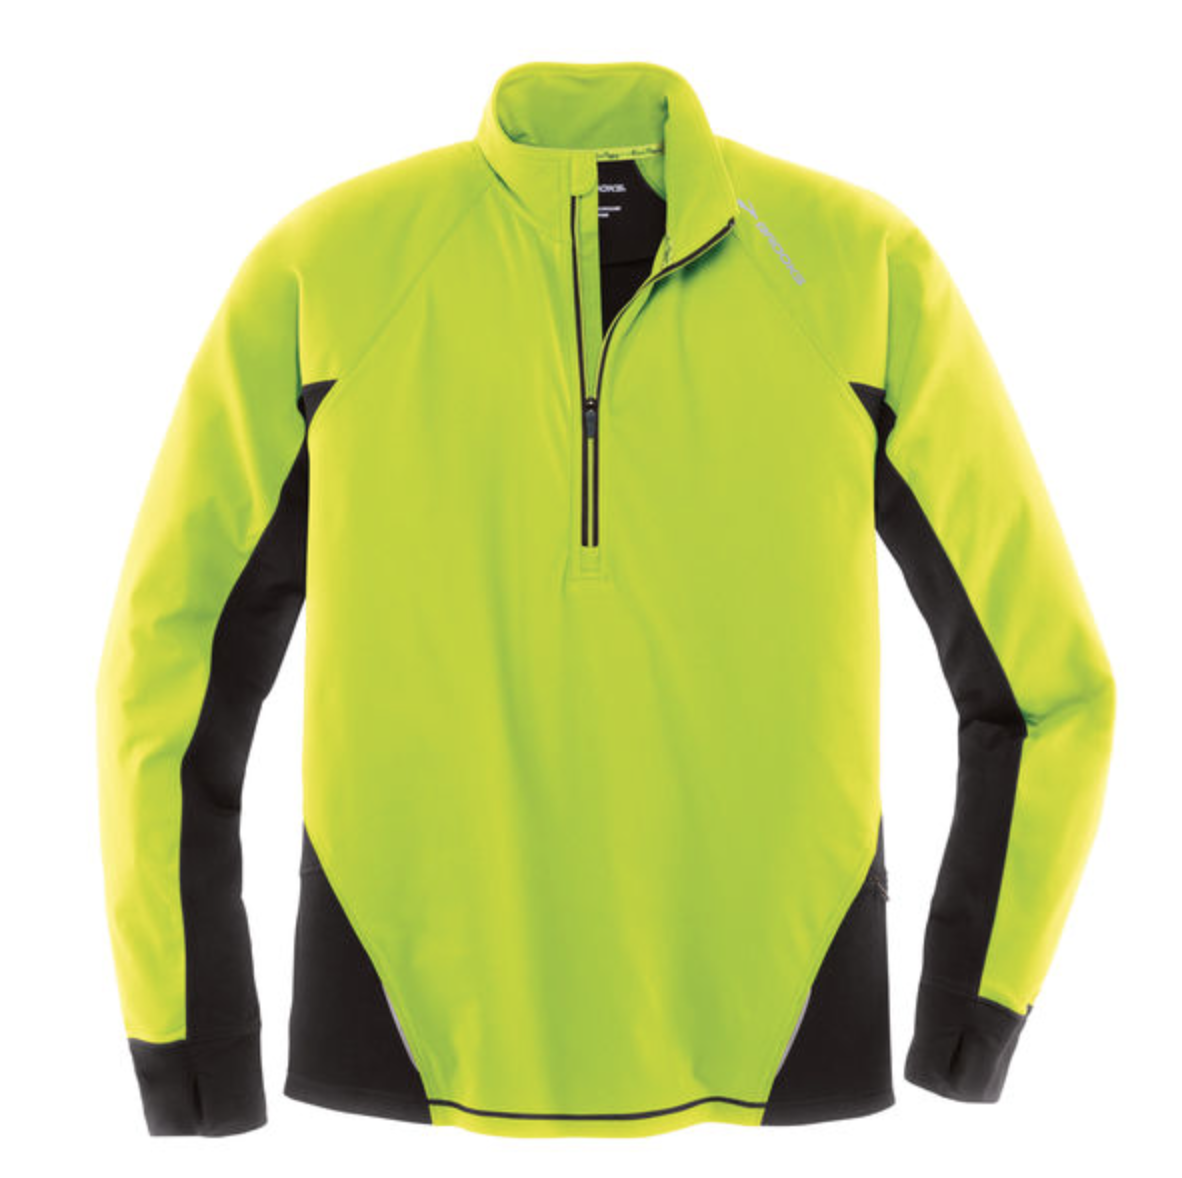 BROOKS MEN'S DRIFT 1/2 ZIP   Windproof, water-resistant,breathable and reflective! CLICK TO SHOP >